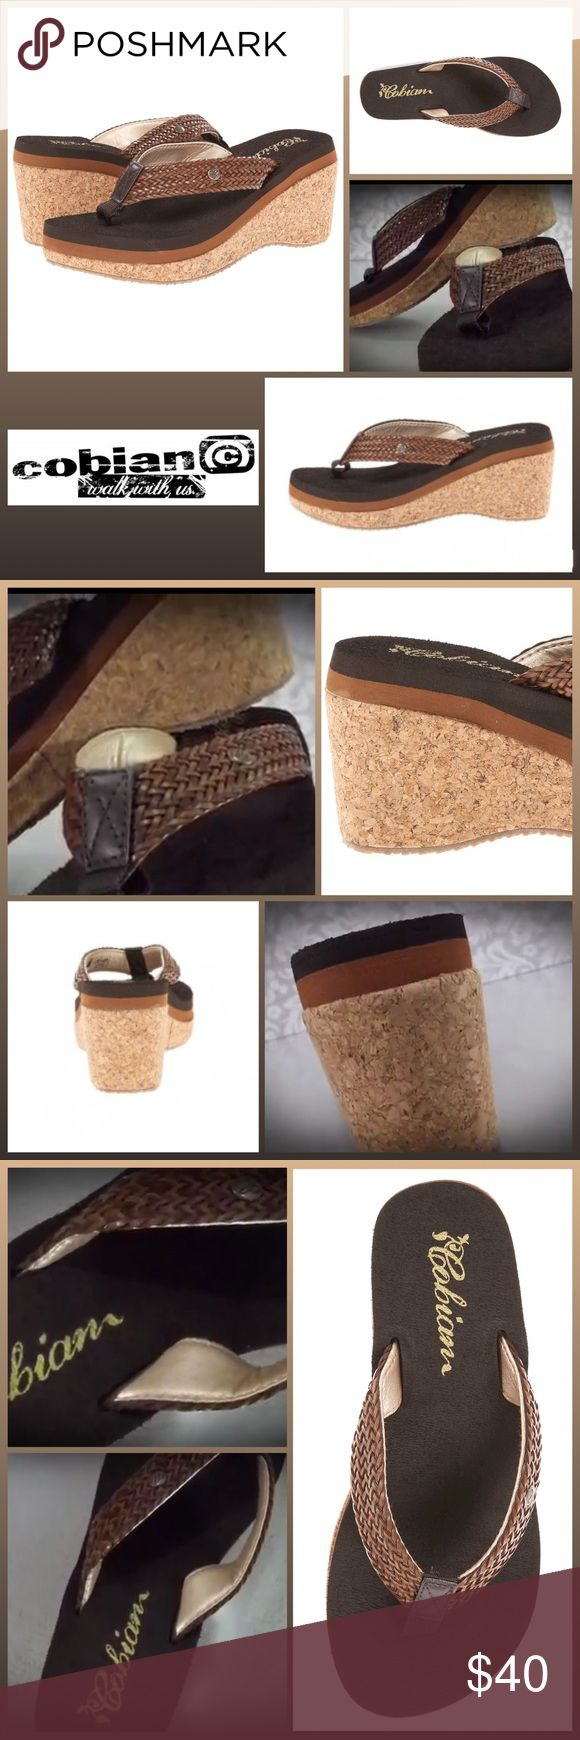 """JUST IN 🆕 'OLIVIA' CORK WEDGE SANDAL ▪️Leather woven strap and toe post ▪️Cork wedge ▪️Metal Cobian icon detail on strap. ▪️Brushed EVA topsole with anatomical arch support built in ▪️EVA wedge design keeps this sandal lightweight ▪️Rubber outsole with repeating tread for added grip. ▪️Height: 2 1/2"""" ▪️Platform Height: 3/4 in  🛍BUNDLE=SAVE  🚫TRADE🚫HOLD🚫MODEL  💯Brand Authentic  ✈️Ship Same Day--Buy By 2PM PST  🖲USE OFFER BUTTON TO NEGOTIATE   ✔️Ask Questions Not Answered In…"""